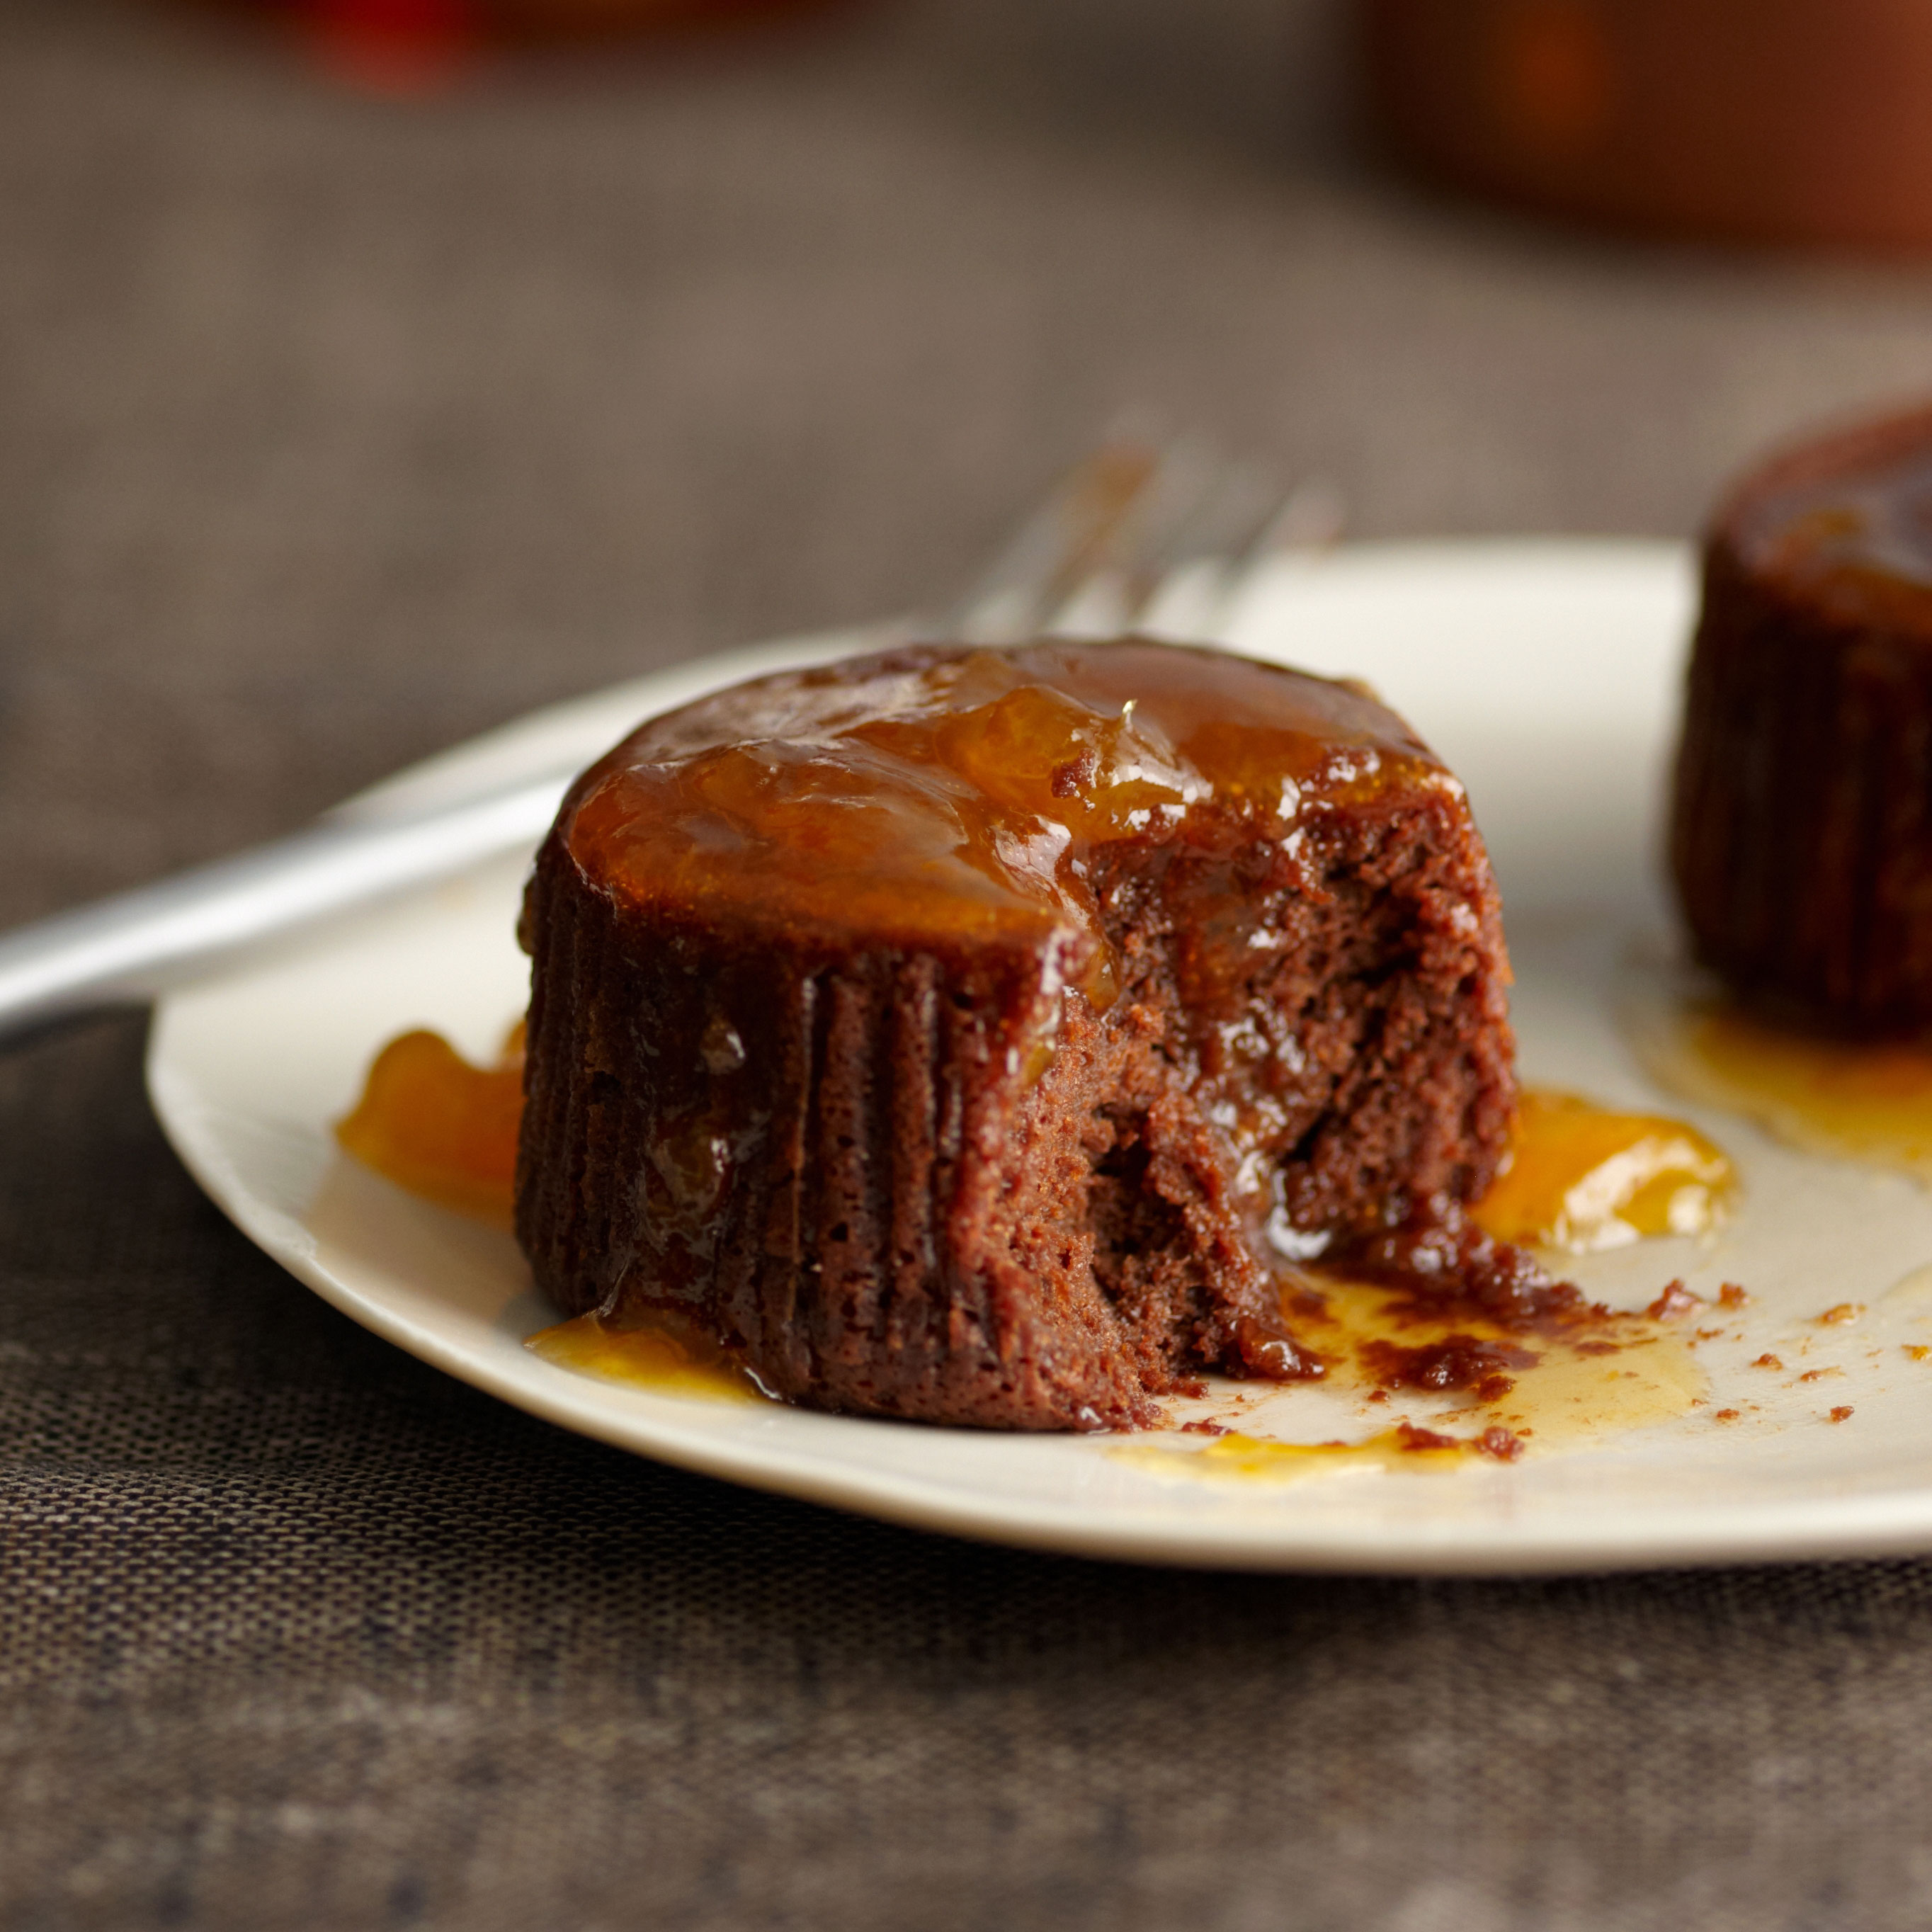 Warm Chocolate Cakes with Apricot-Cognac Sauce Recipe - Jacques Pépin ...